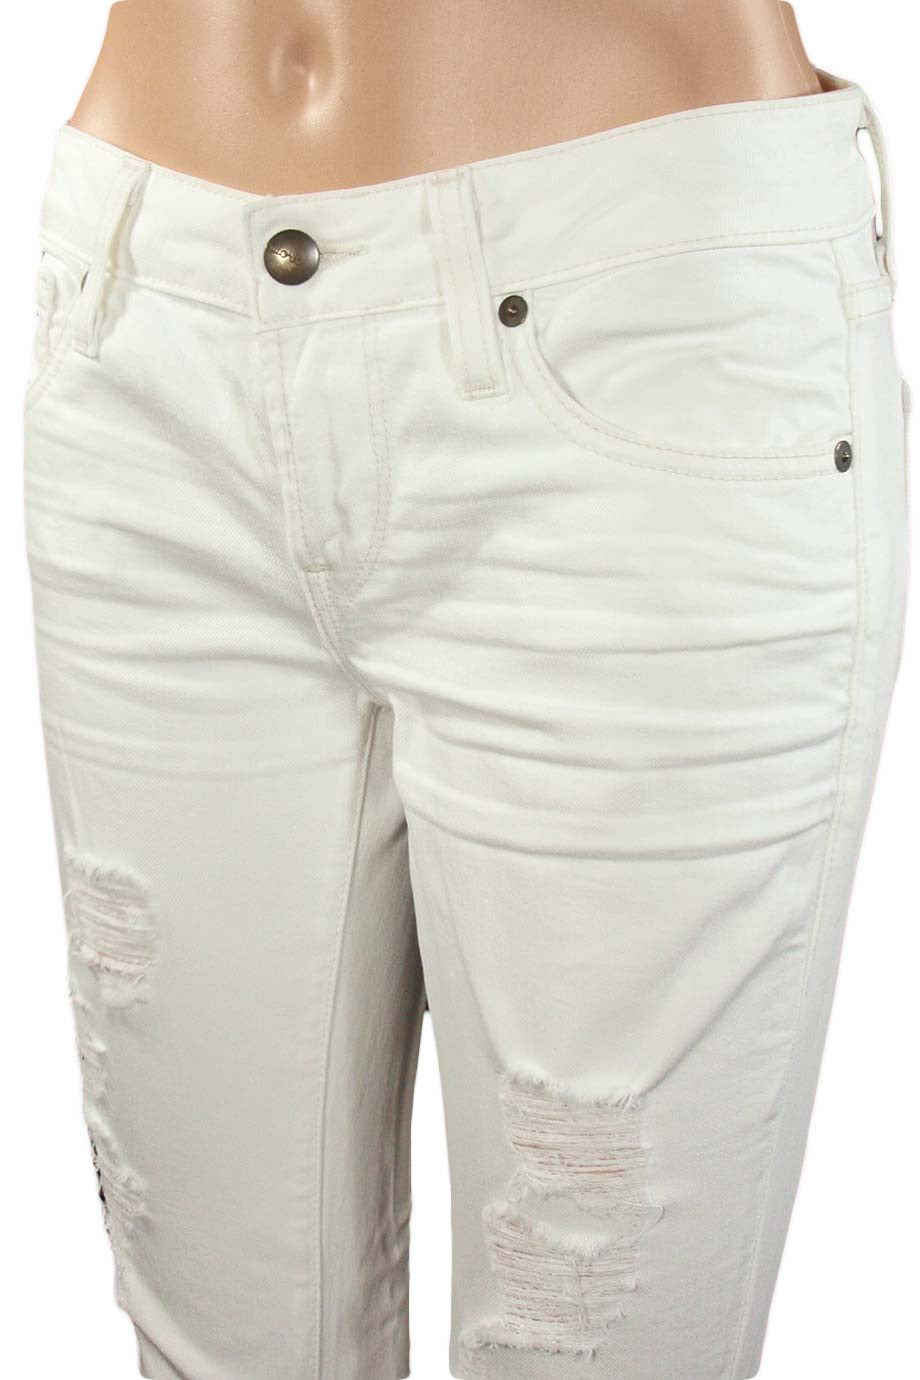 Work Custom Jeans White Denim Gidget Low-Rise Flare / Sz 26-Style Therapy